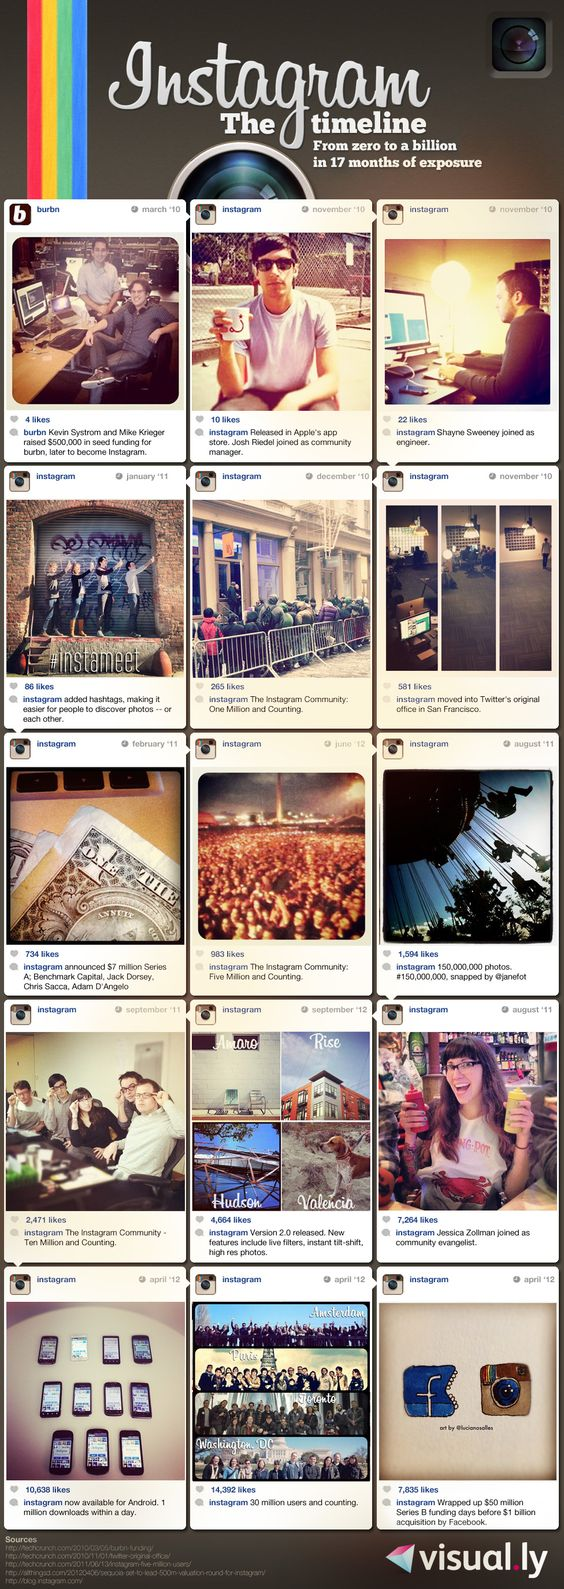 #Instagram: From Zero to One Billion in 17 Months #Infographic